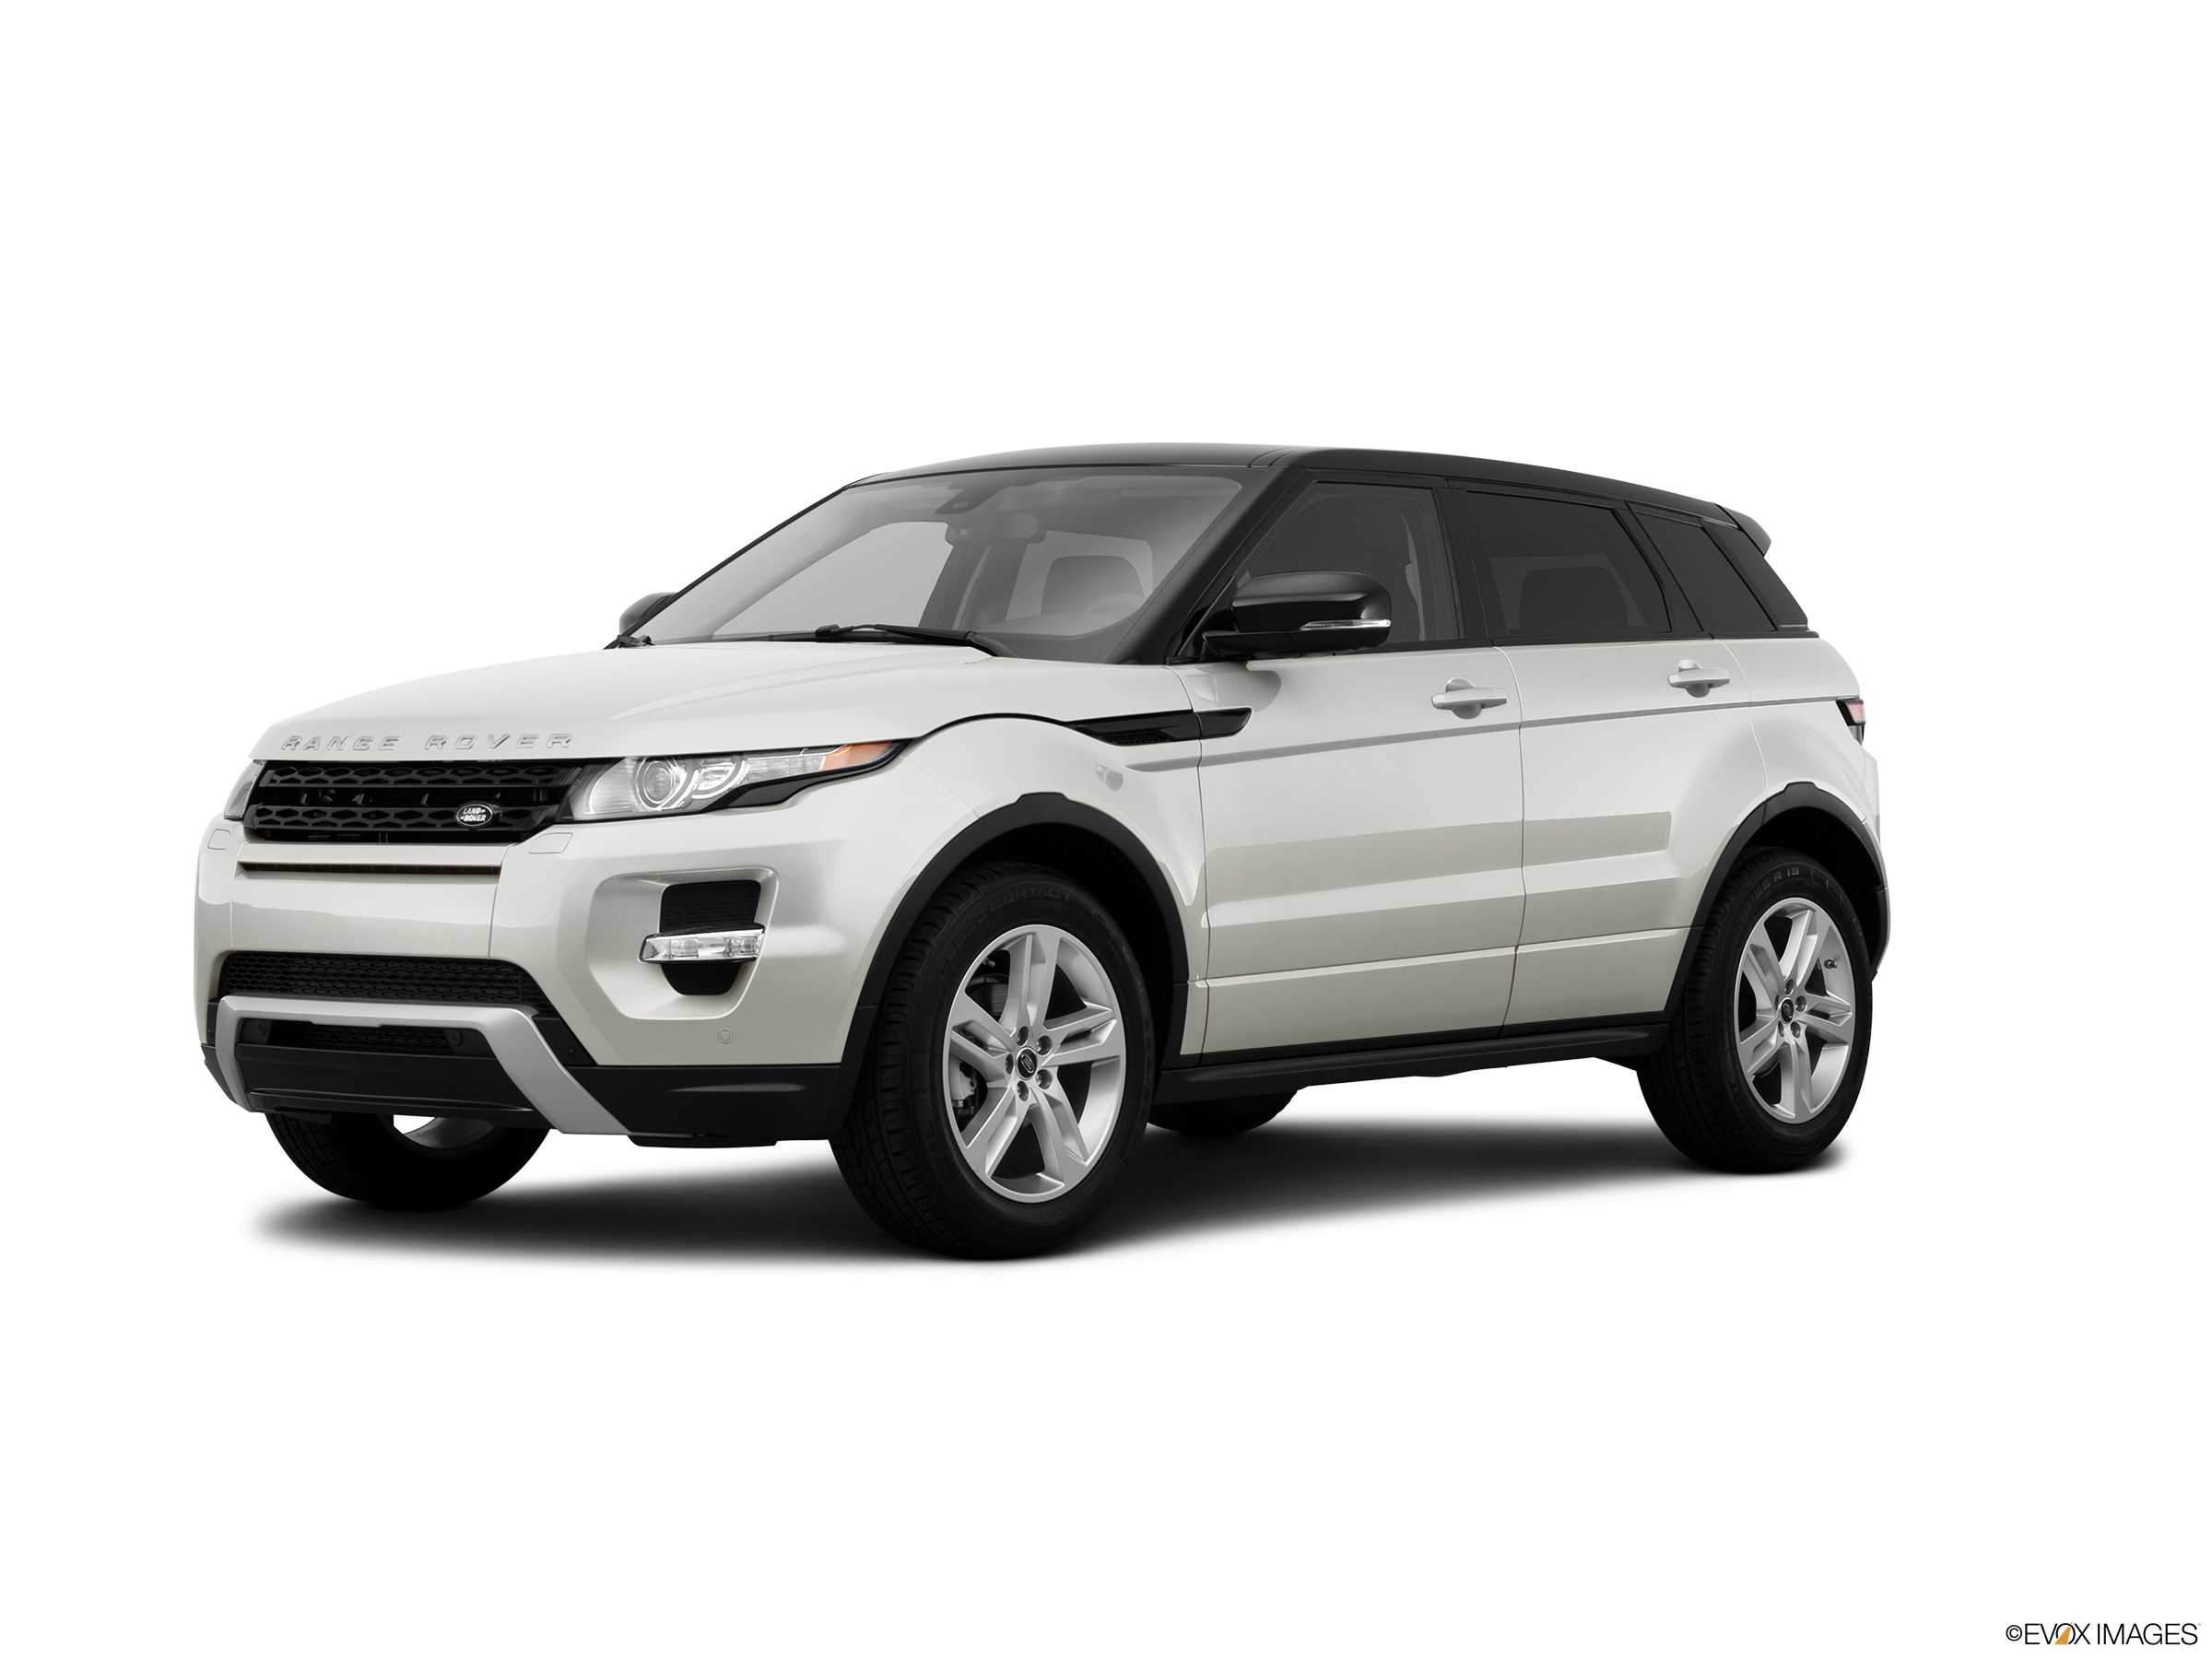 2013 Land Rover Range Rover Evoque Values Cars For Sale Kelley Blue Book